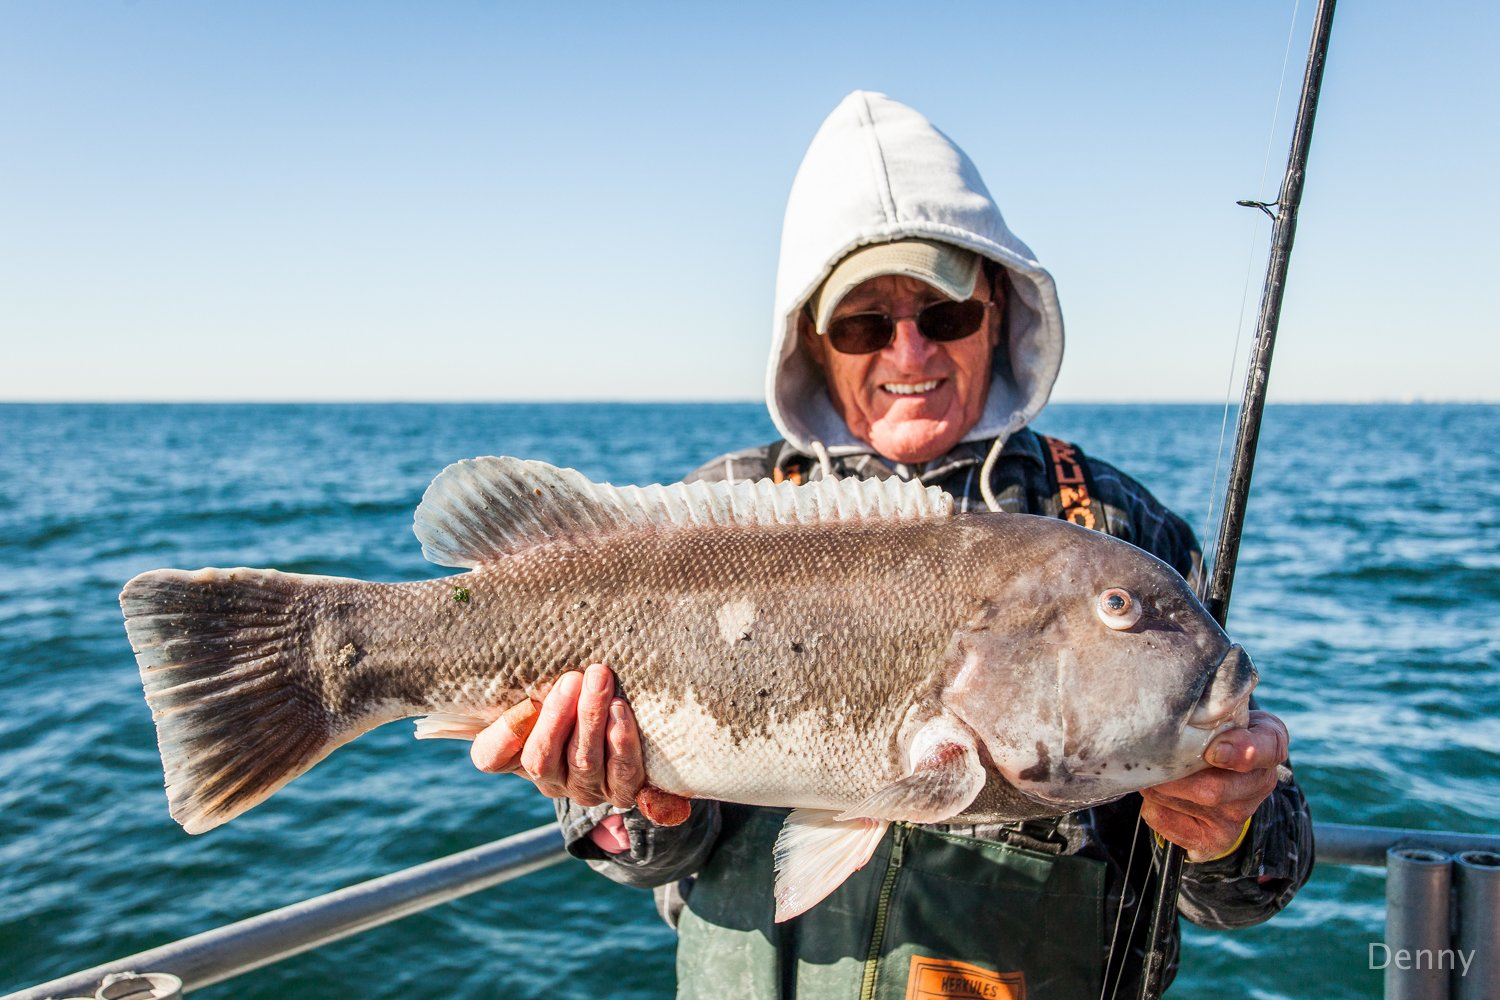 New MD Tautog Regulations for 2018